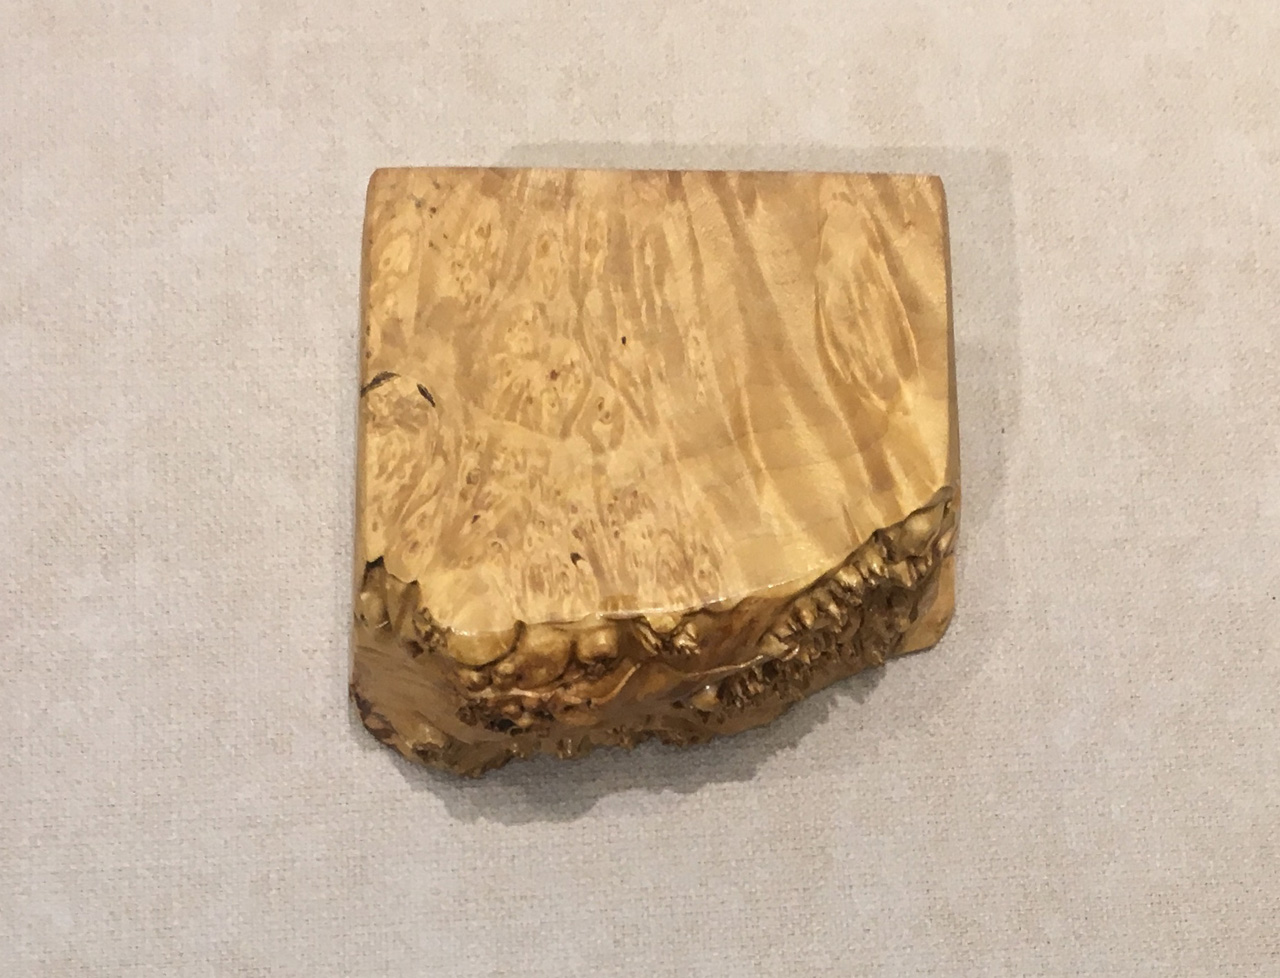 Box with Tray by Steve Kale with live edge top view